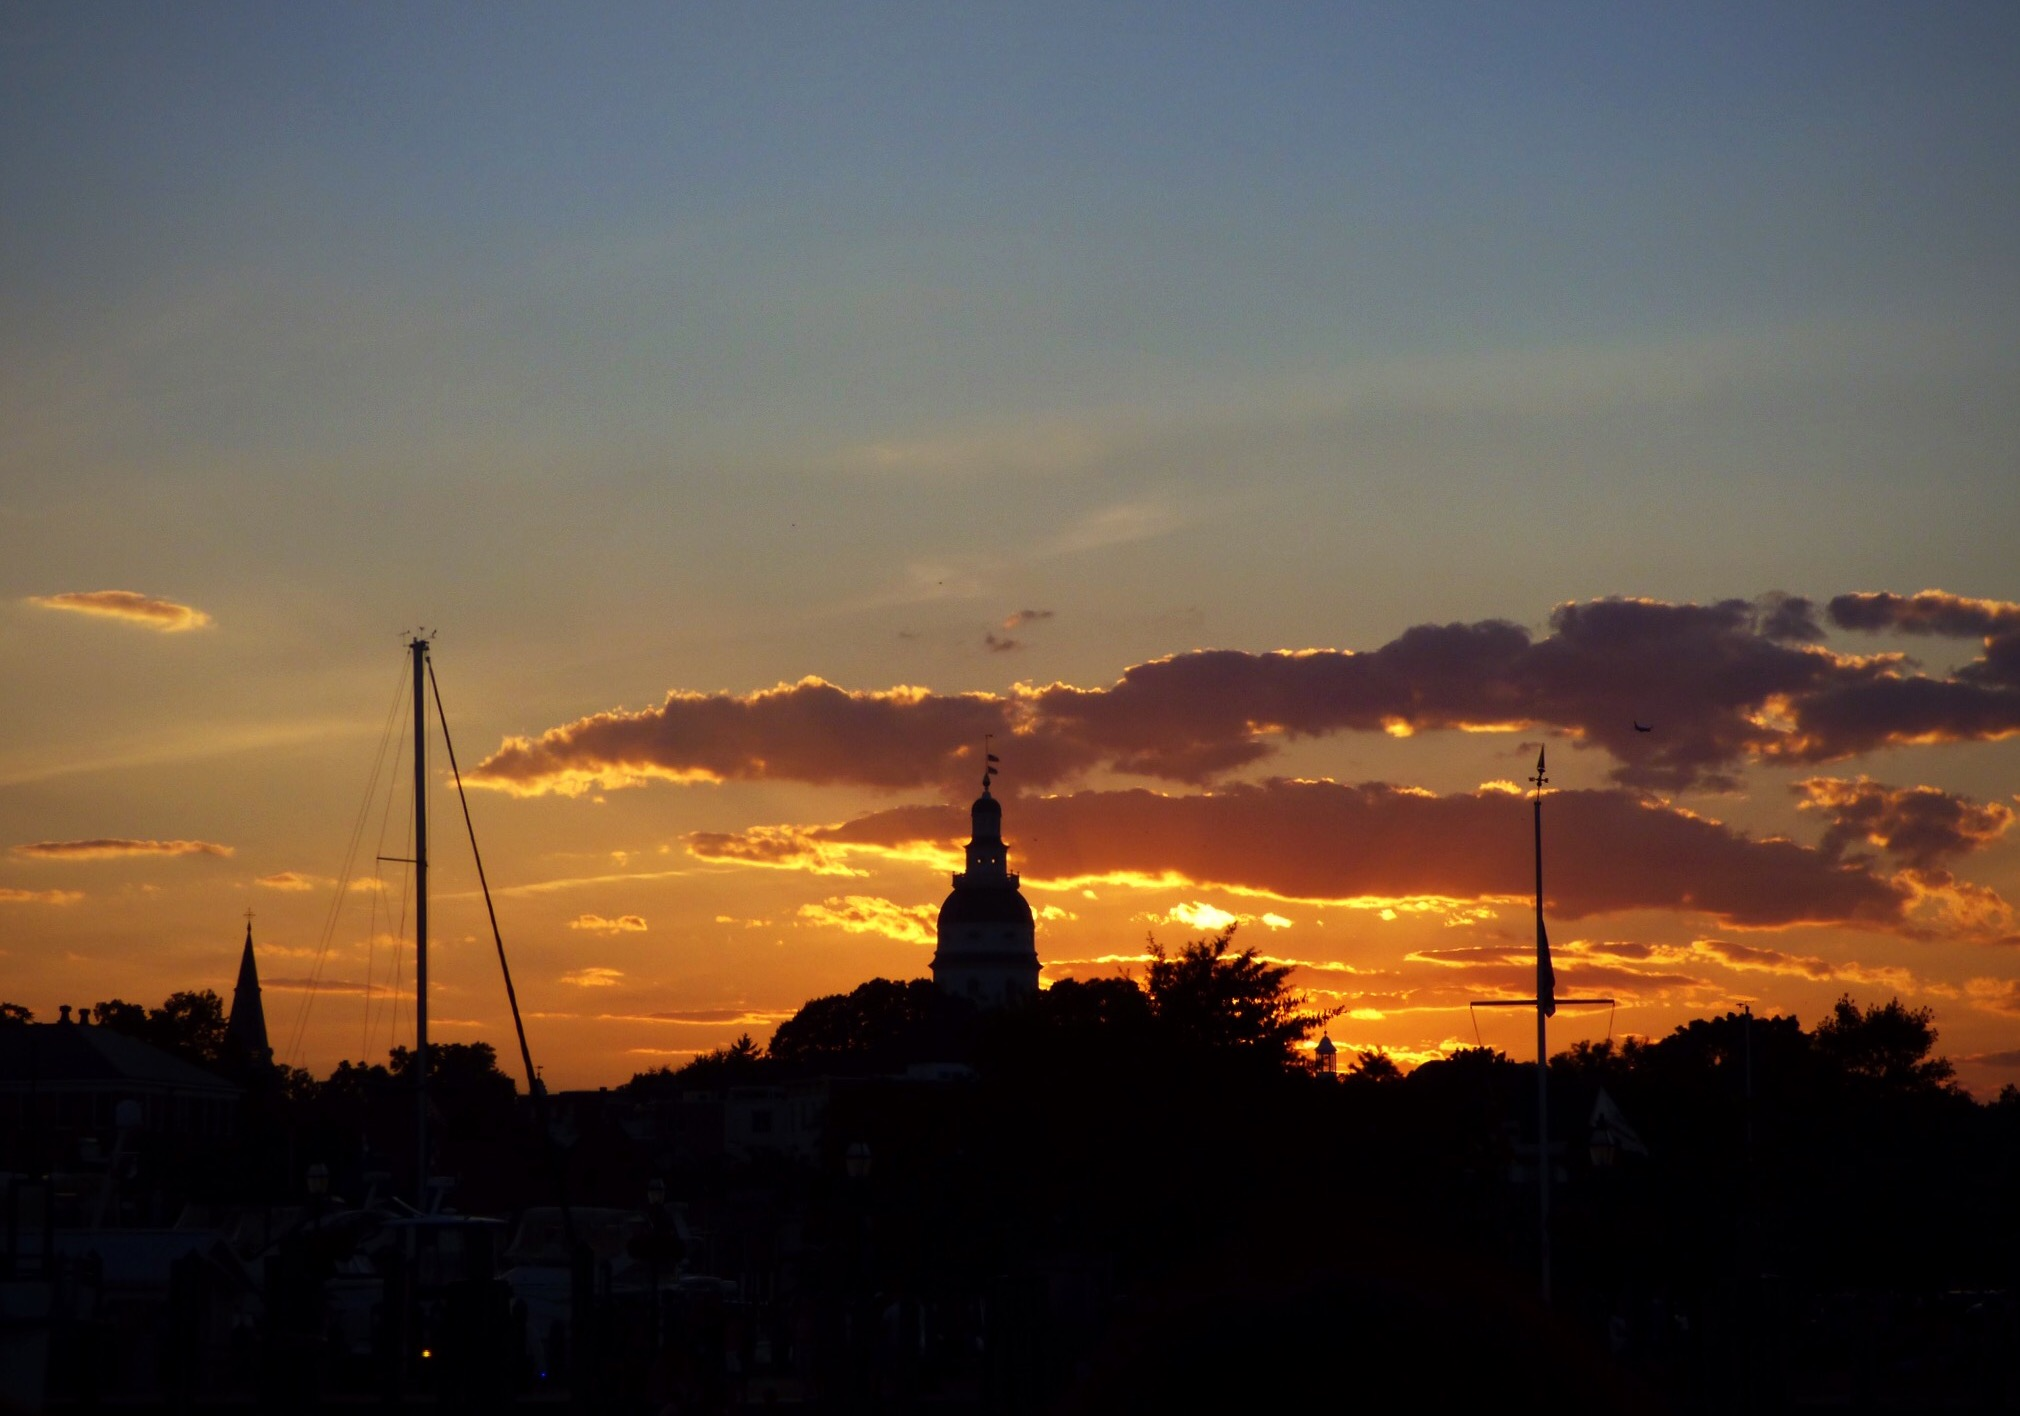 Annapolis Capital dome silhouetted in sunset with clouds